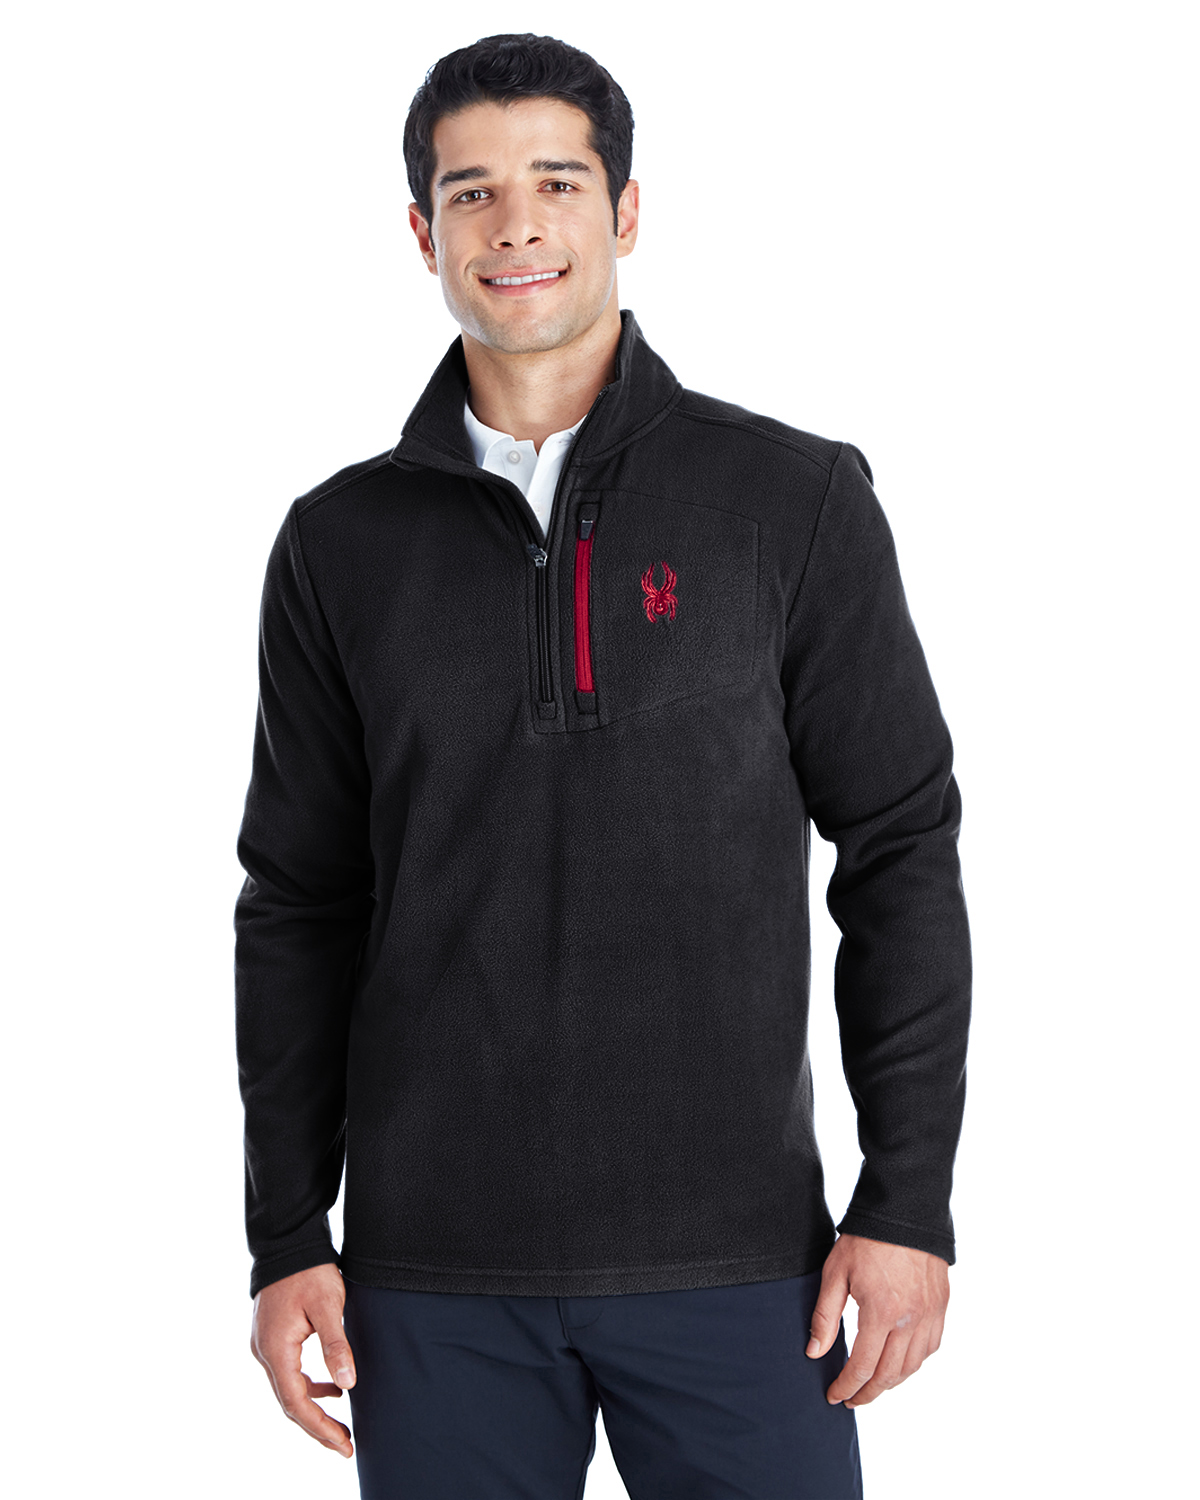 Spyder 187332 - Men's Transport Quarter-Zip Fleece Pullover